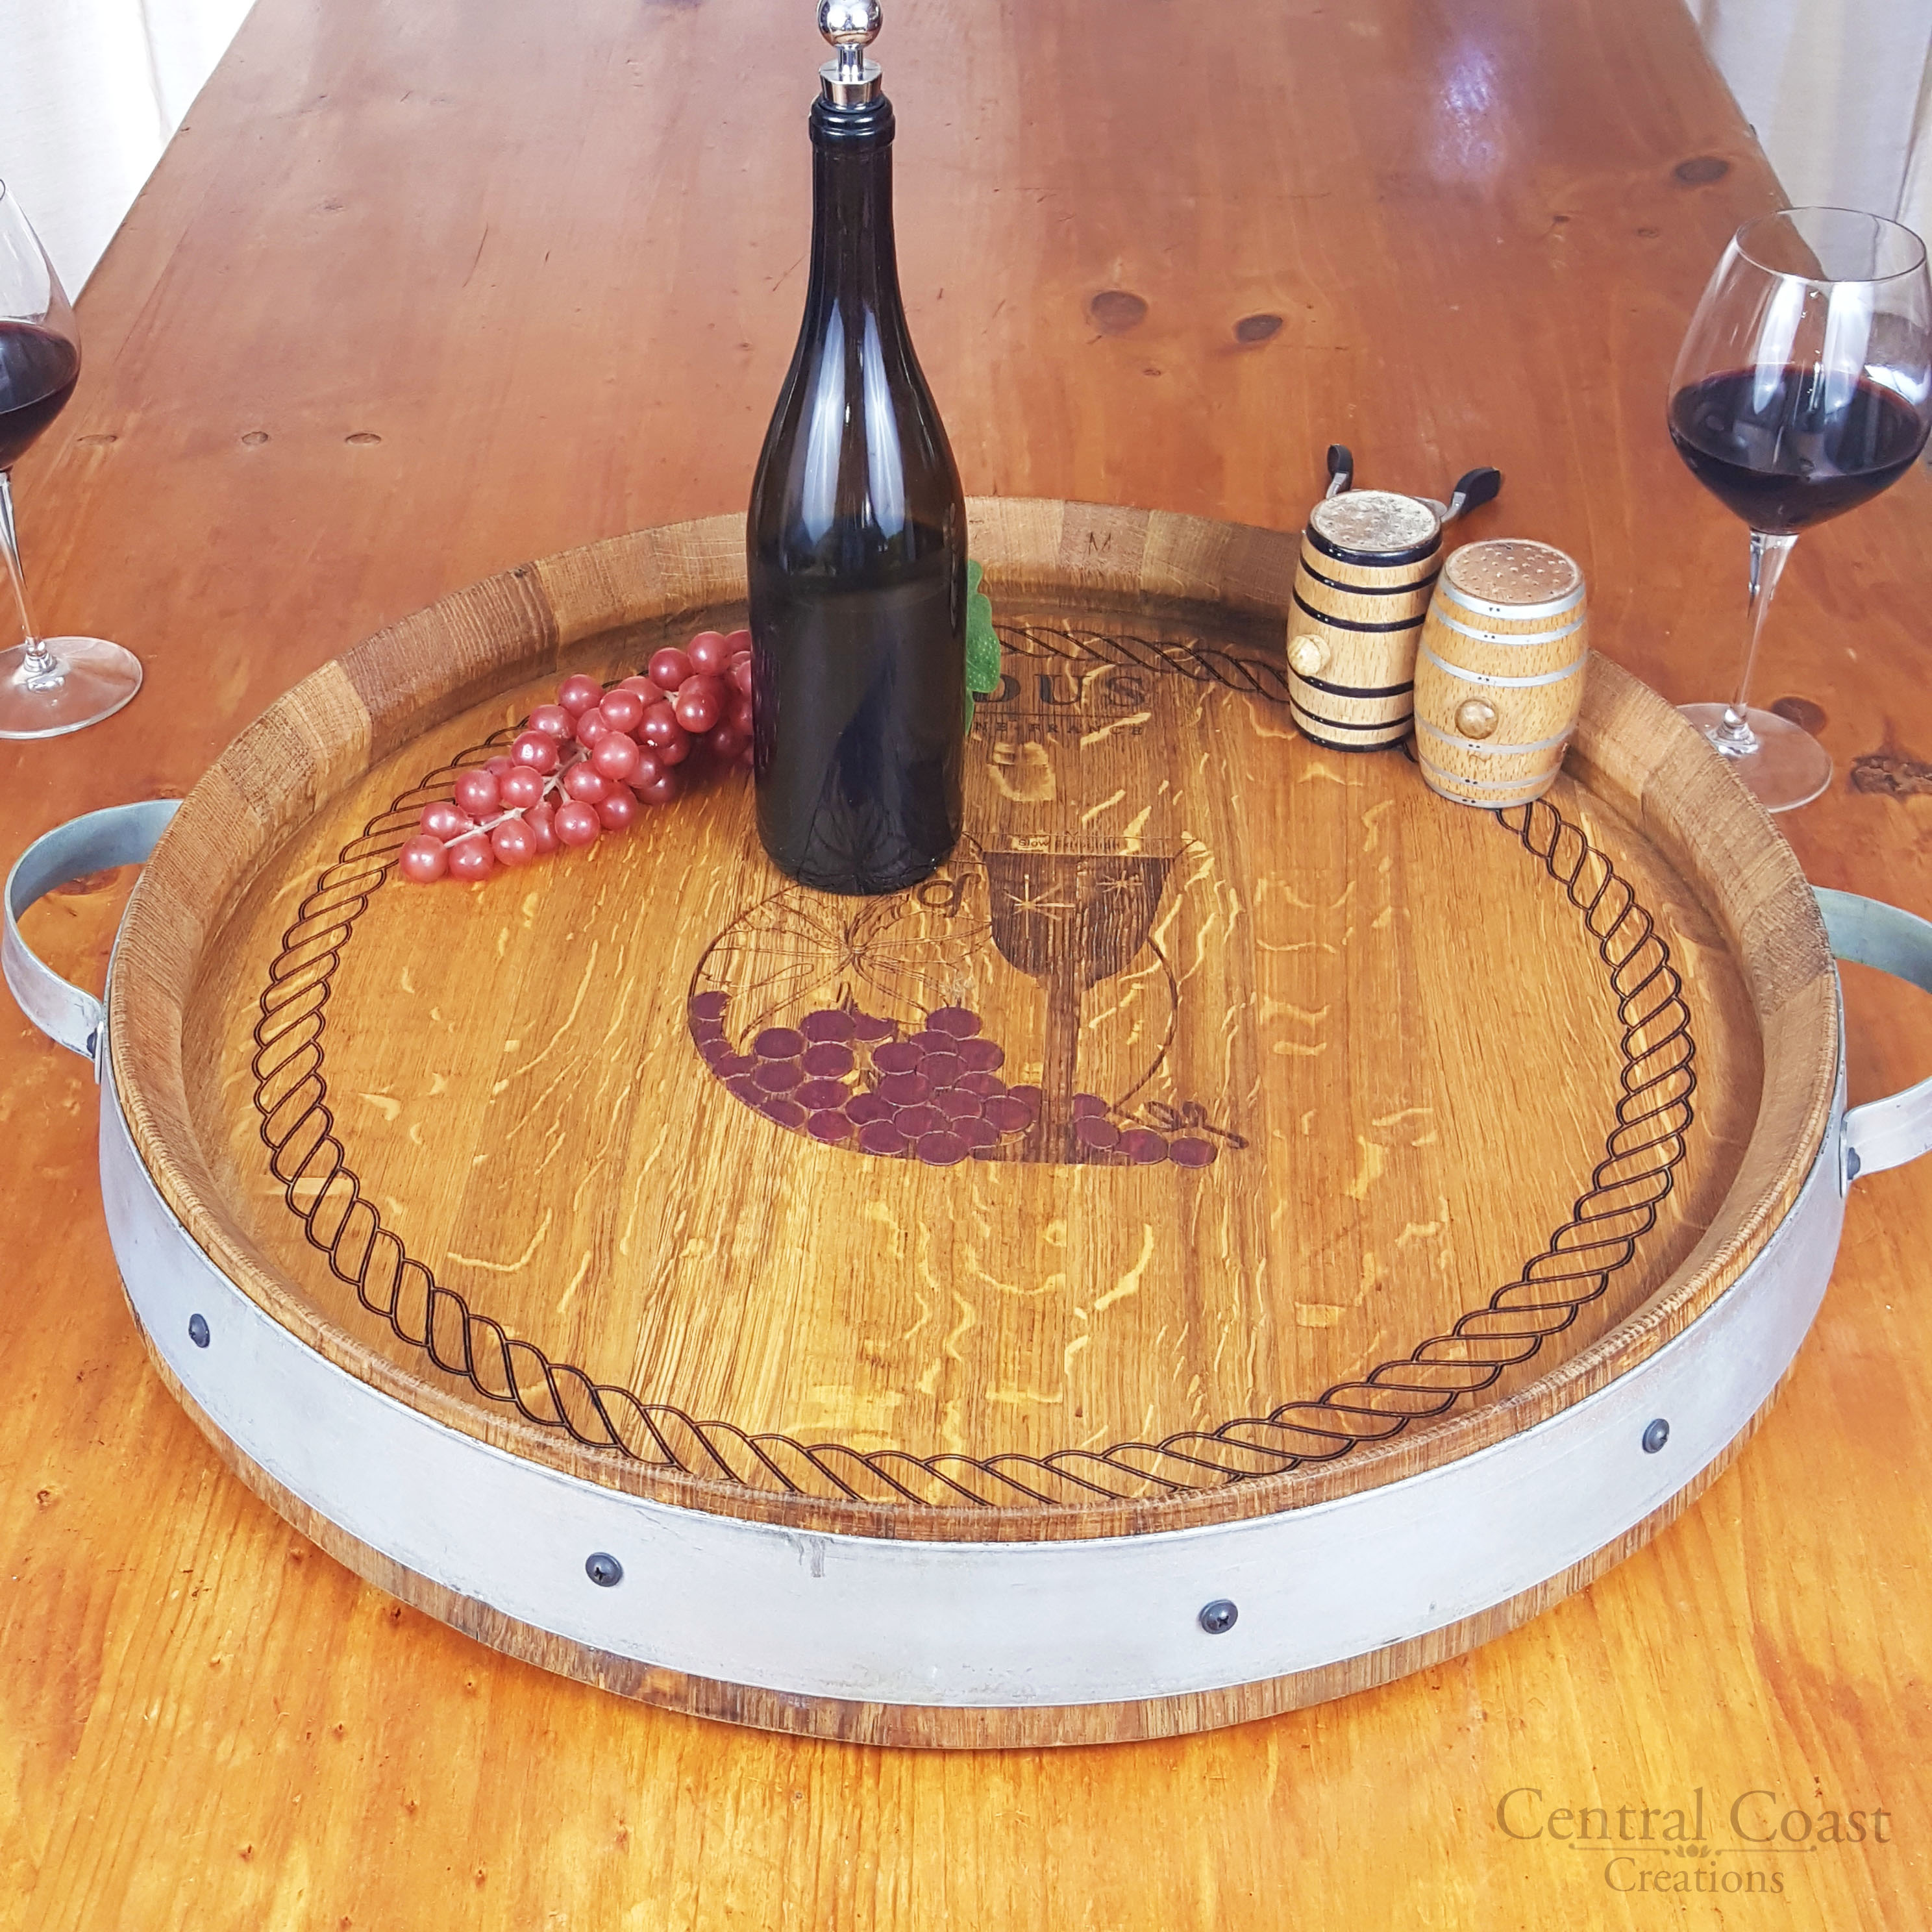 Lazy Susan Barrel Top W Wine Glass Engraving Central Coast Creations